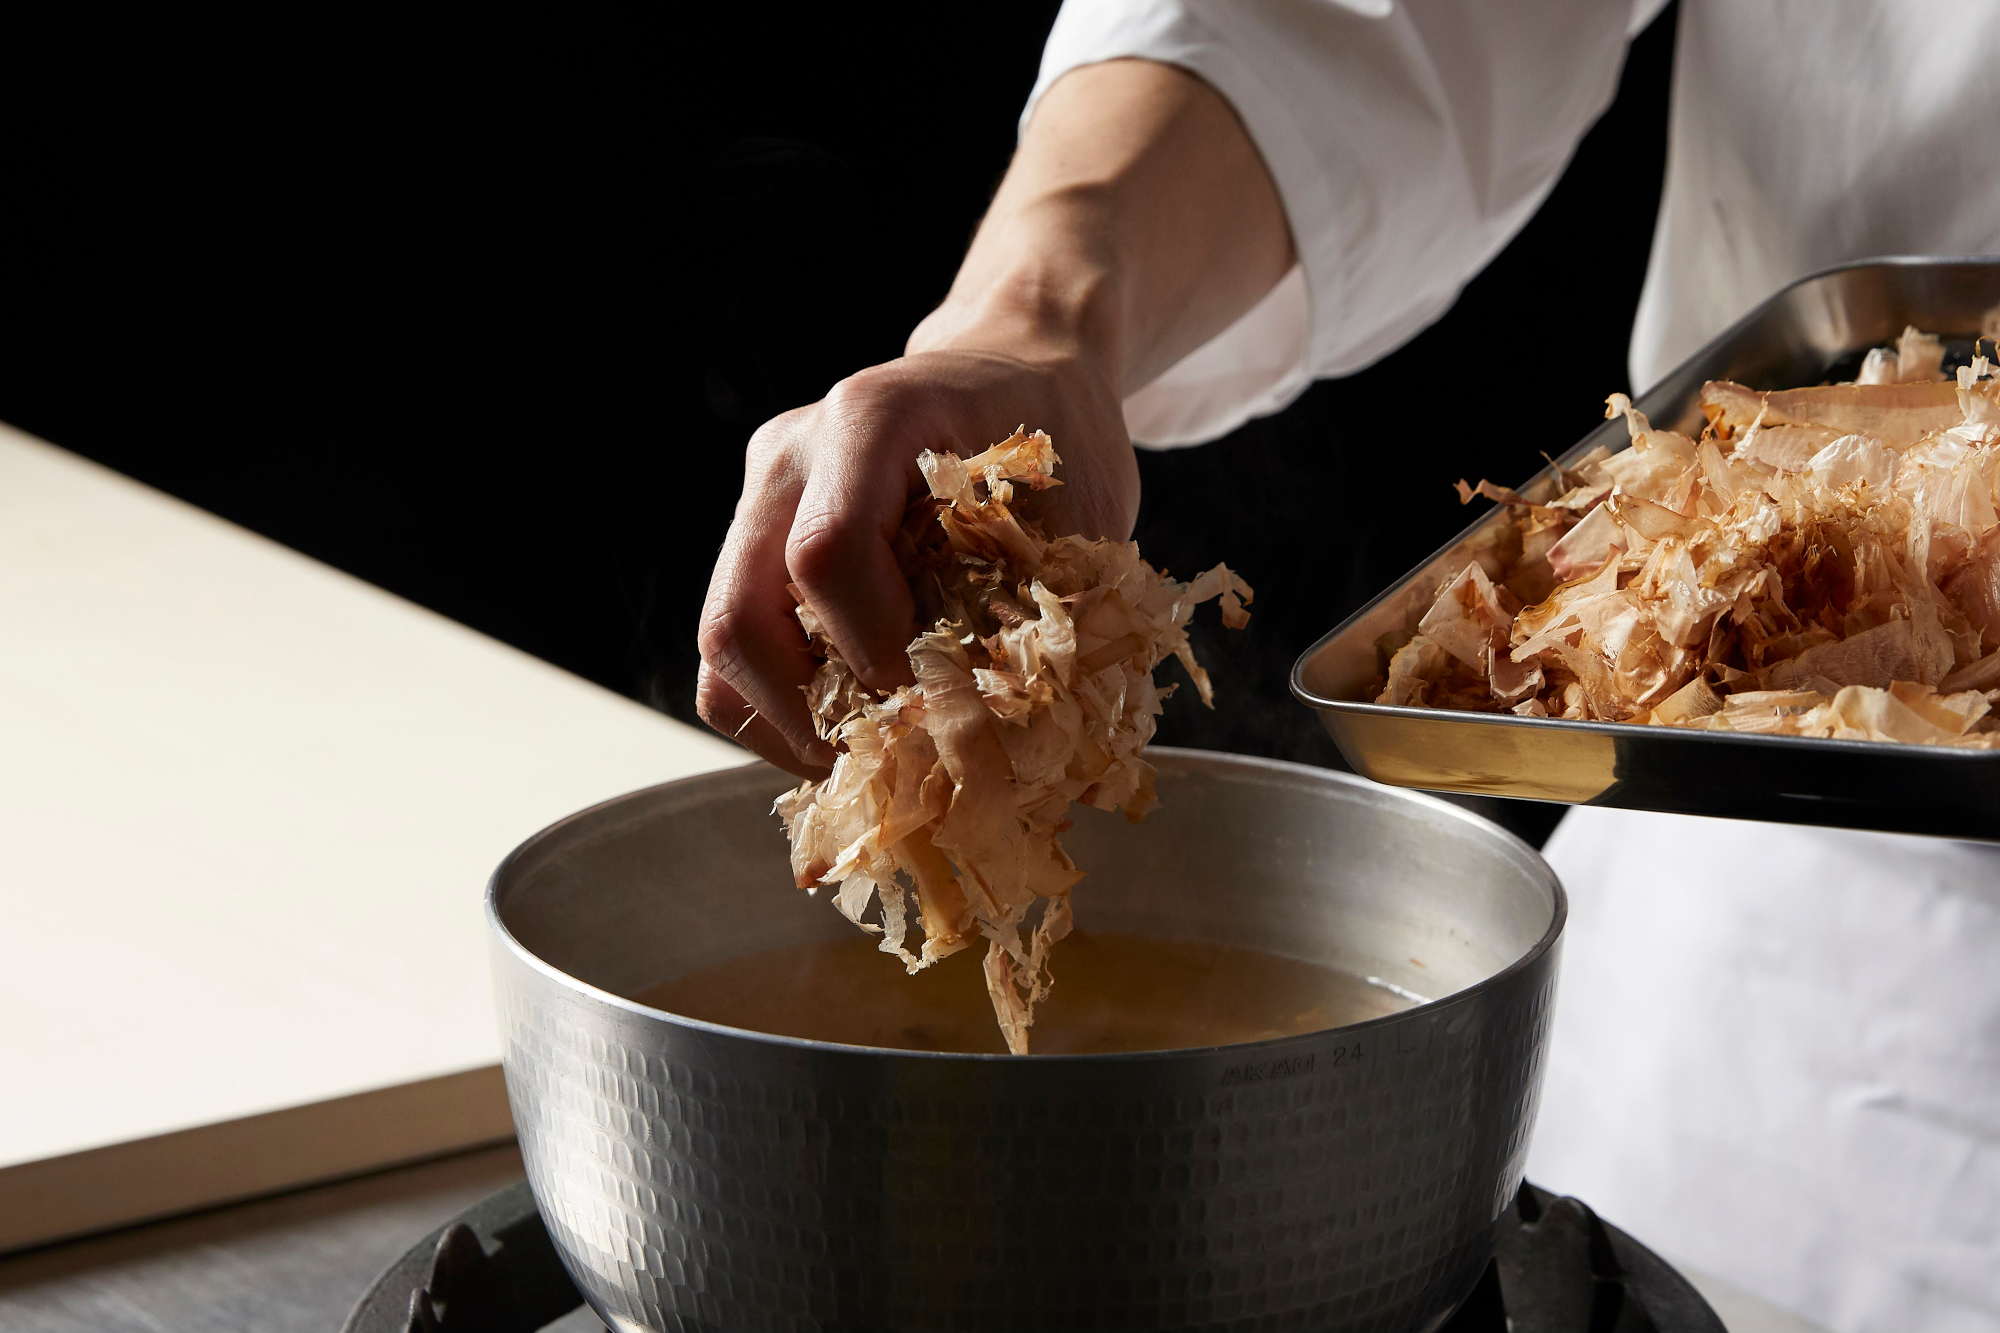 Japanese food and flavors come to Google Arts & Culture